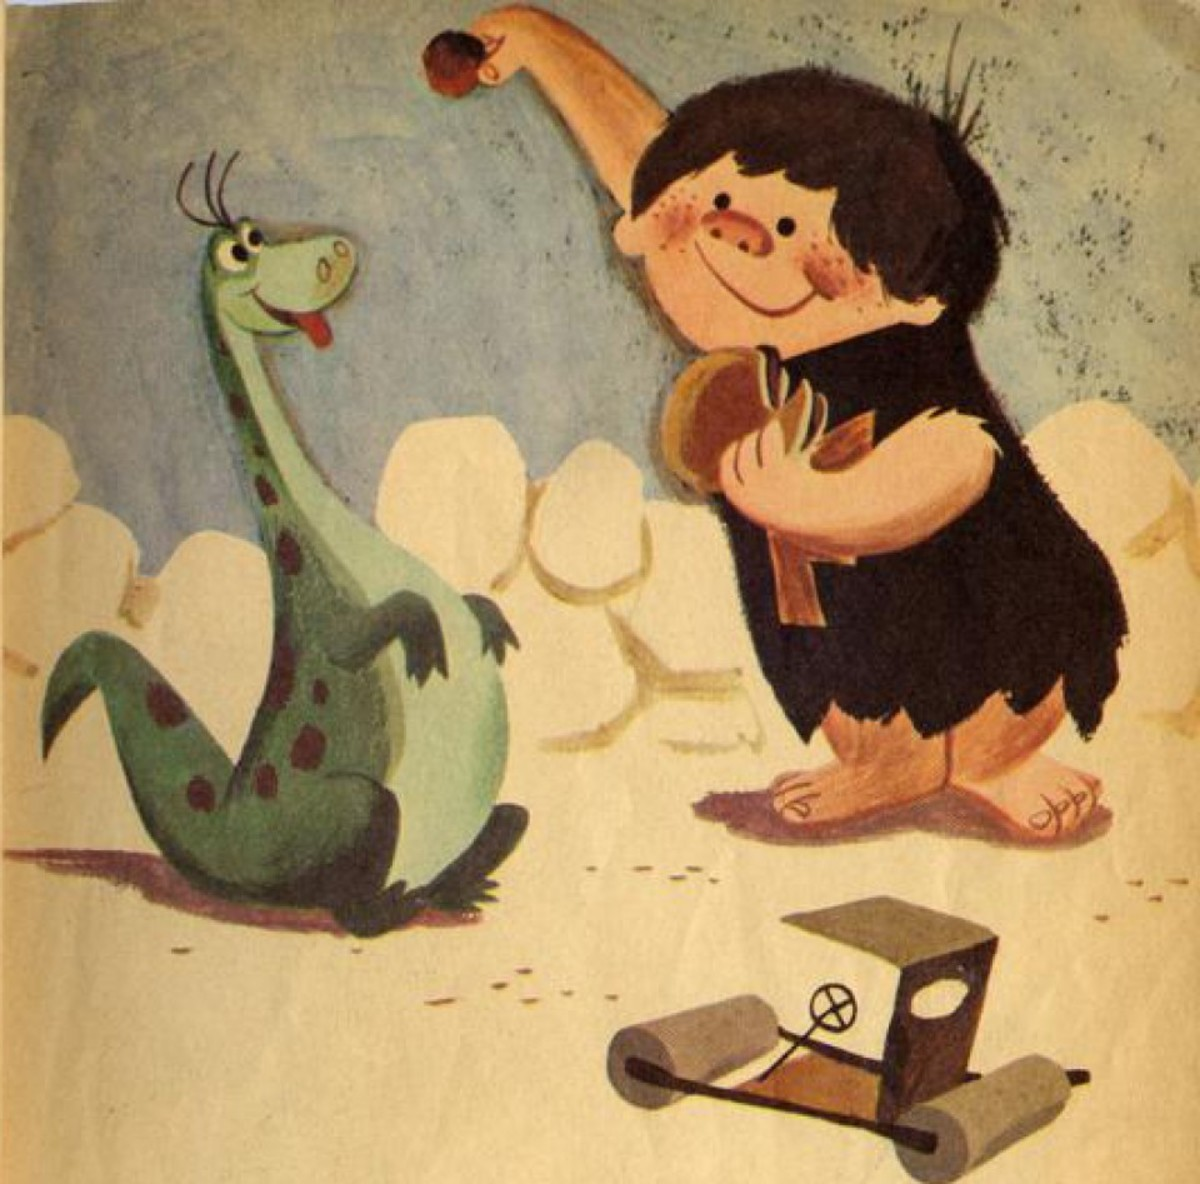 The early concept of a child Flintstone, Fred Jr., who only appeared in a Little Golden Book released during the first season.